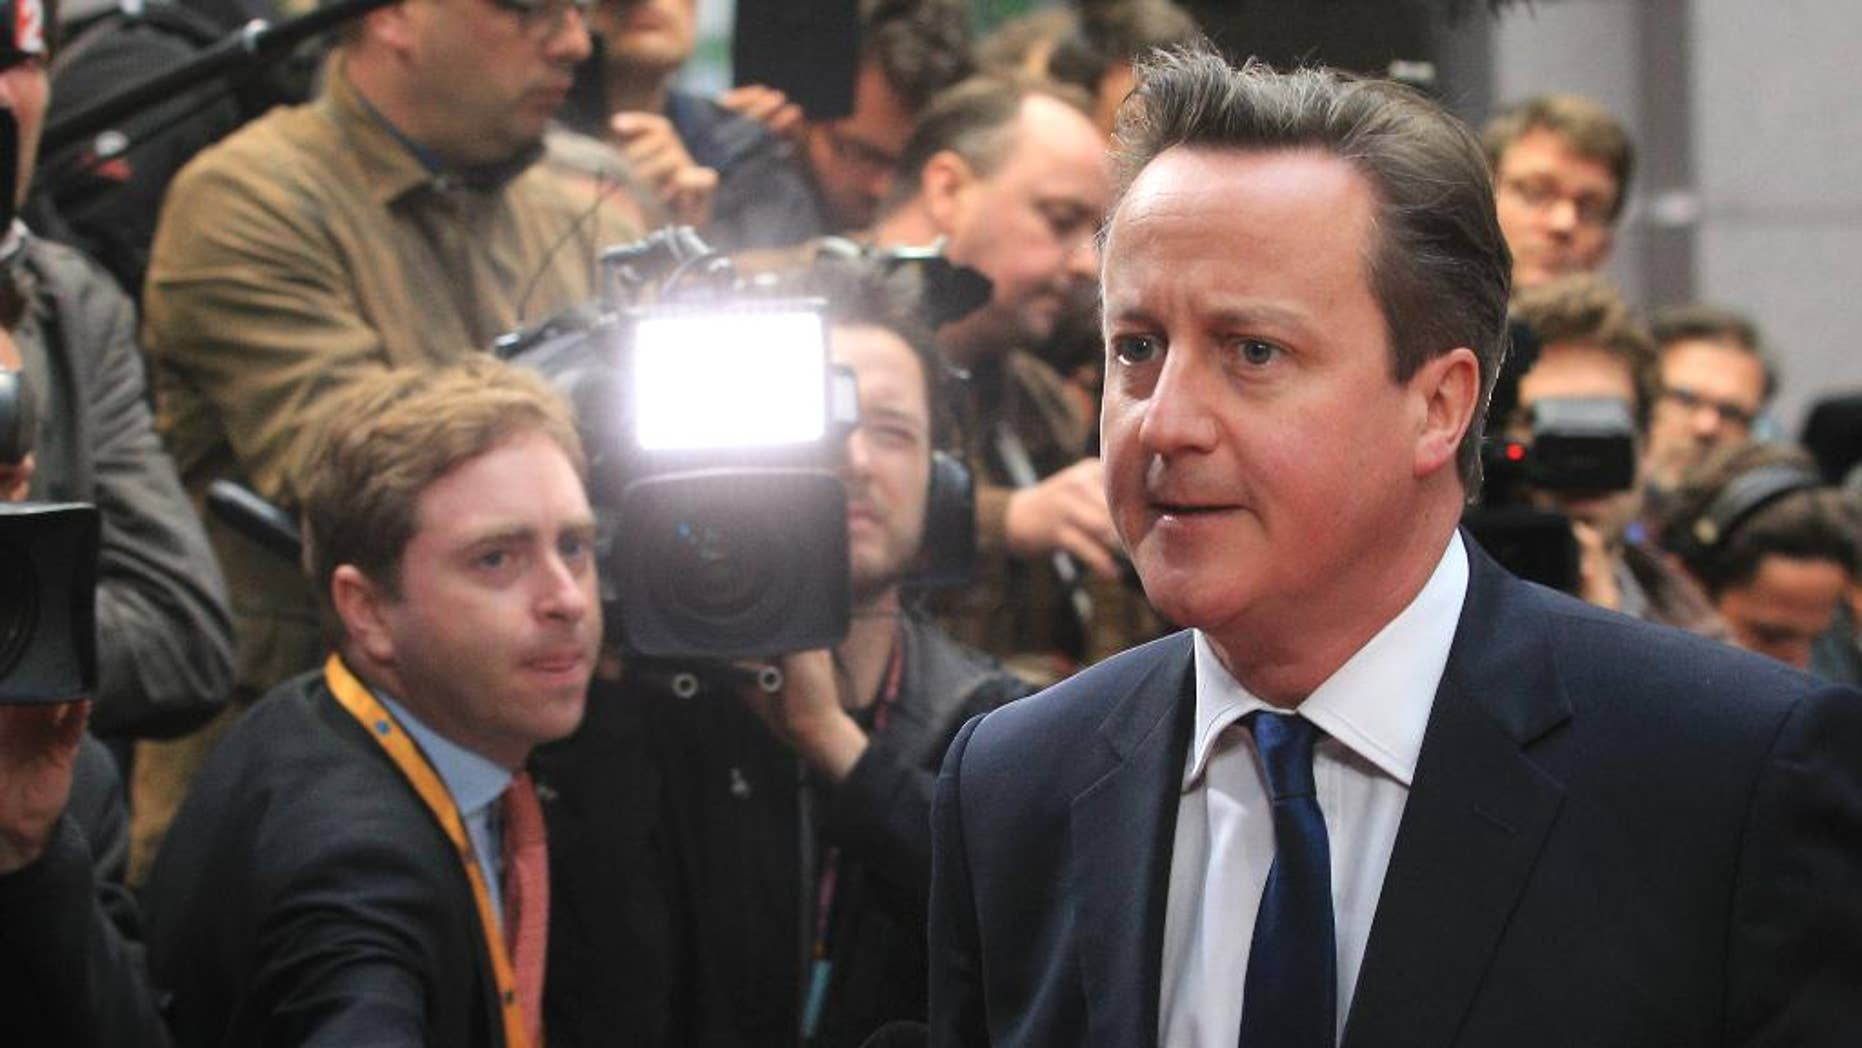 FILE - In this Tuesday, May 27, 2014 file photo, British Prime Minister David Cameron walks past the media upon arrival at the European Council building in Brussels. Many political battles are ugly _ but toss in 28 nations, high unemployment, angry voters and a skeptical Britain and the fight over who will be the European Union's next chief executive may have downright hideous consequences. Britain's Prime Minister David Cameron has set himself up for a stinging defeat as his vocal campaign to block the front-runner for the top EU job, former Luxembourg prime minister and longtime Brussels insider Jean-Claude Juncker, fails to gain traction. (AP Photo/Yves Logghe, File)